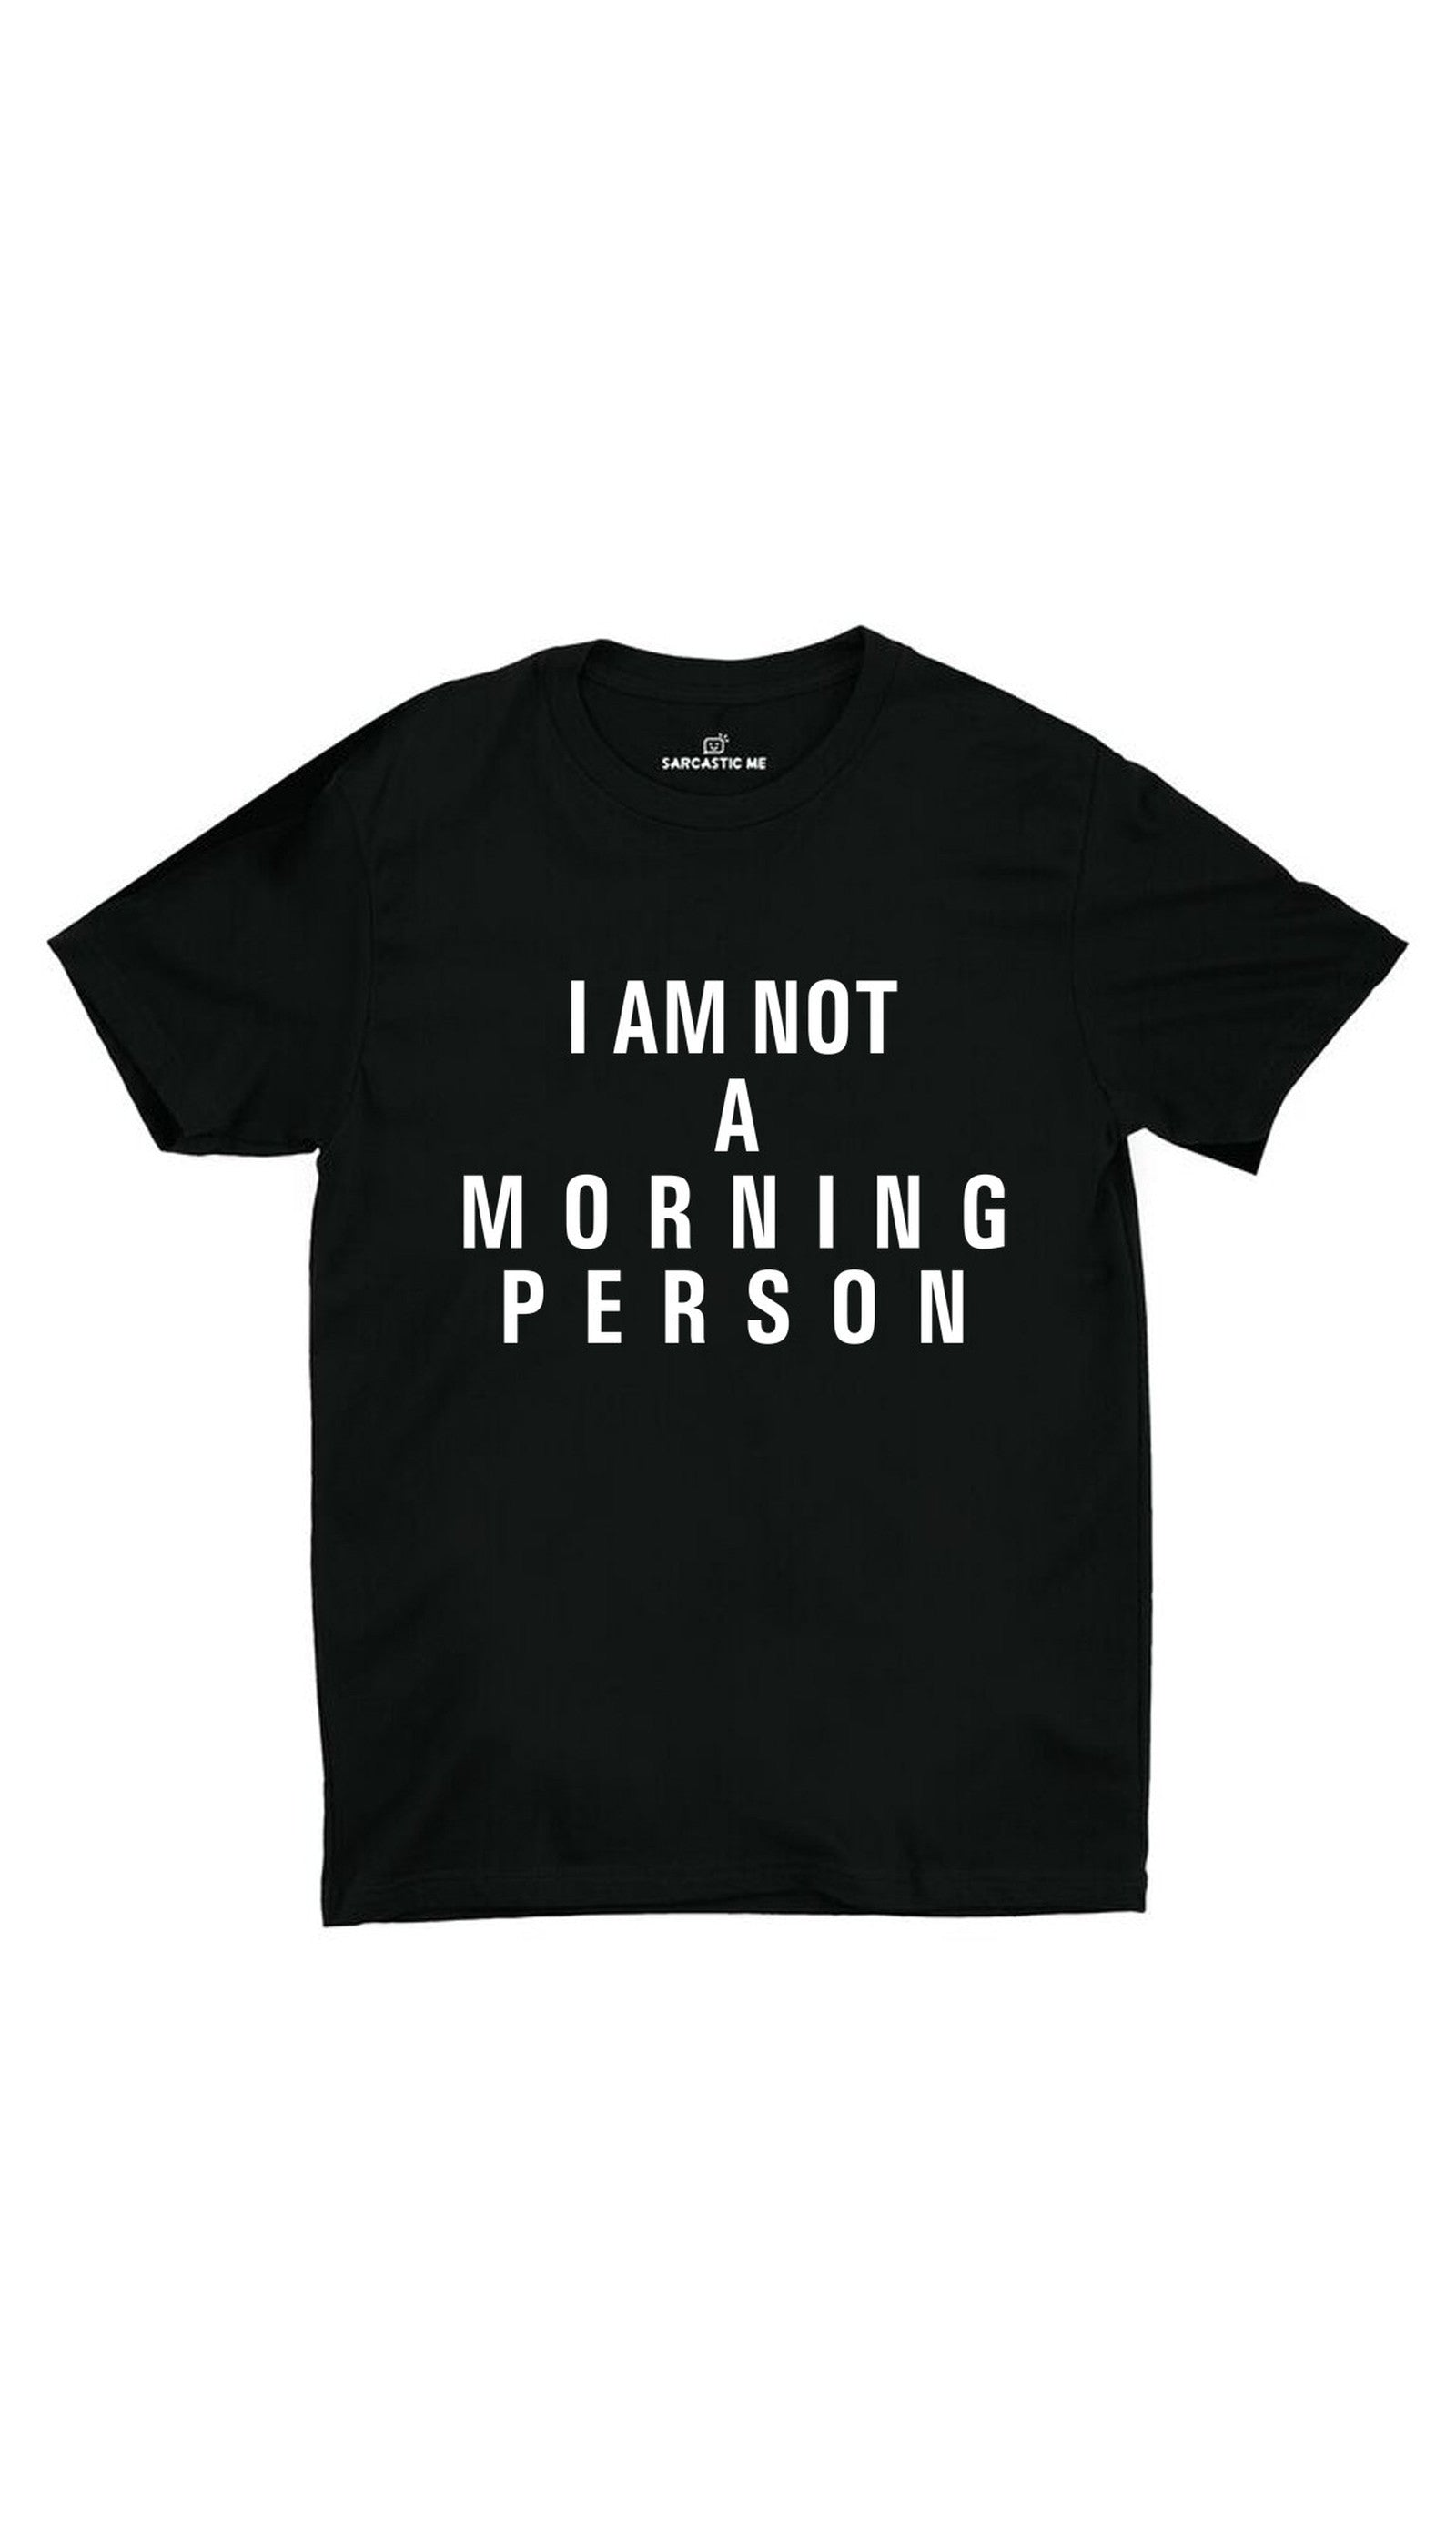 I Am Not A Morning Person Black Unisex T-shirt | Sarcastic MEI Am Not A Morning Person Black Unisex T-shirt | Sarcastic ME